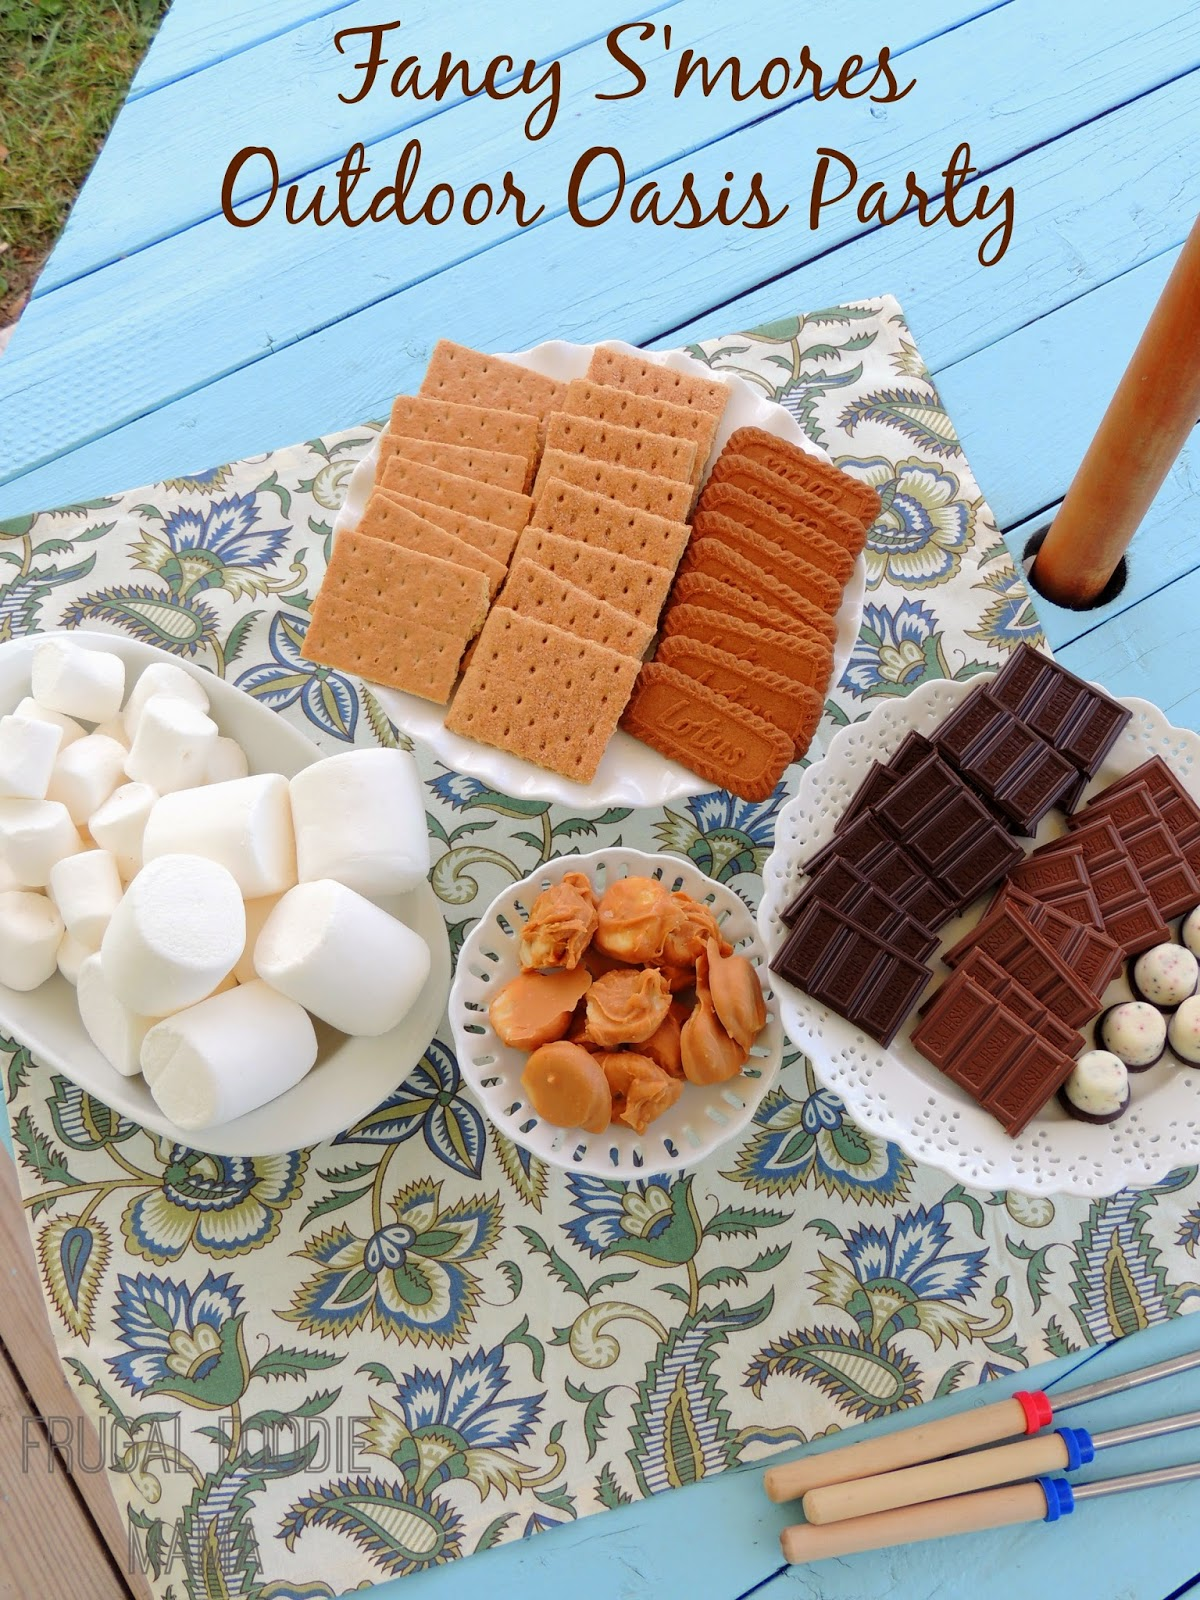 Fancy S'mores Outdoor Oasis Party via thefrugalfoodiemama.com #Pier1OutdoorParty